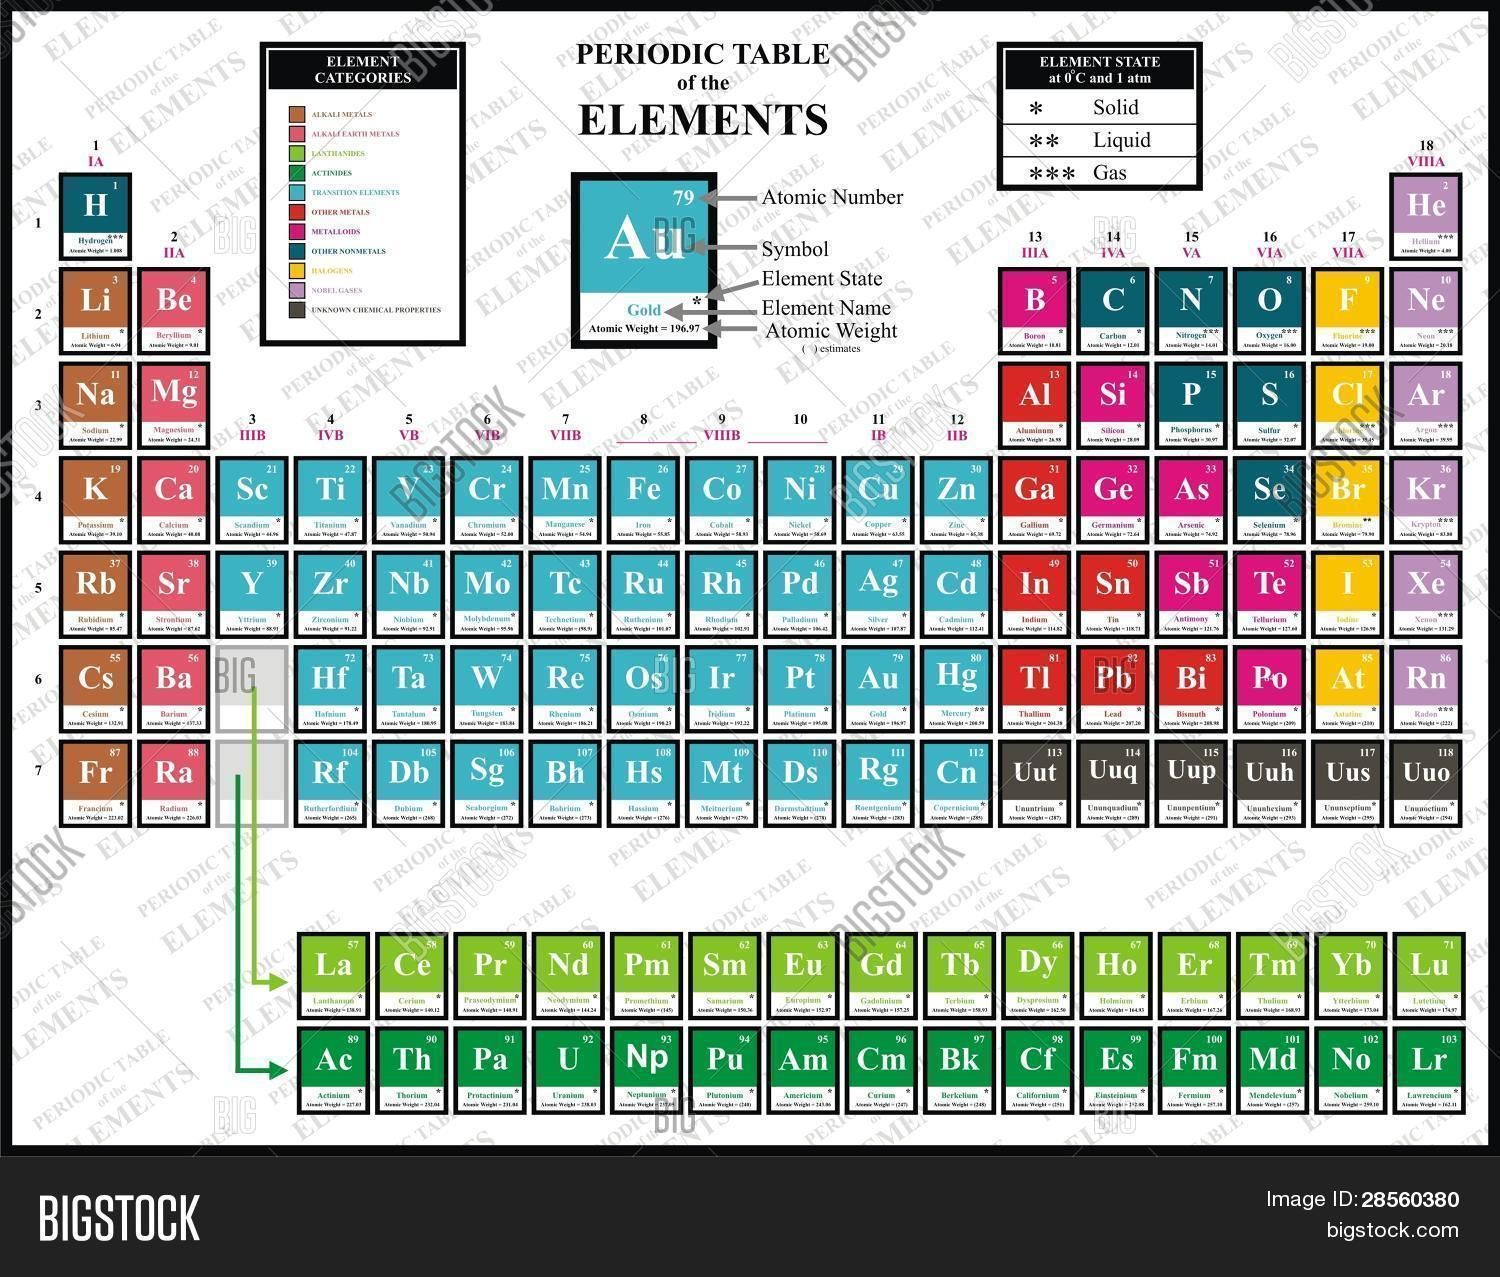 Colorful periodic image photo free trial bigstock colorful periodic table of the chemical elements including element name atomic number atomic urtaz Images